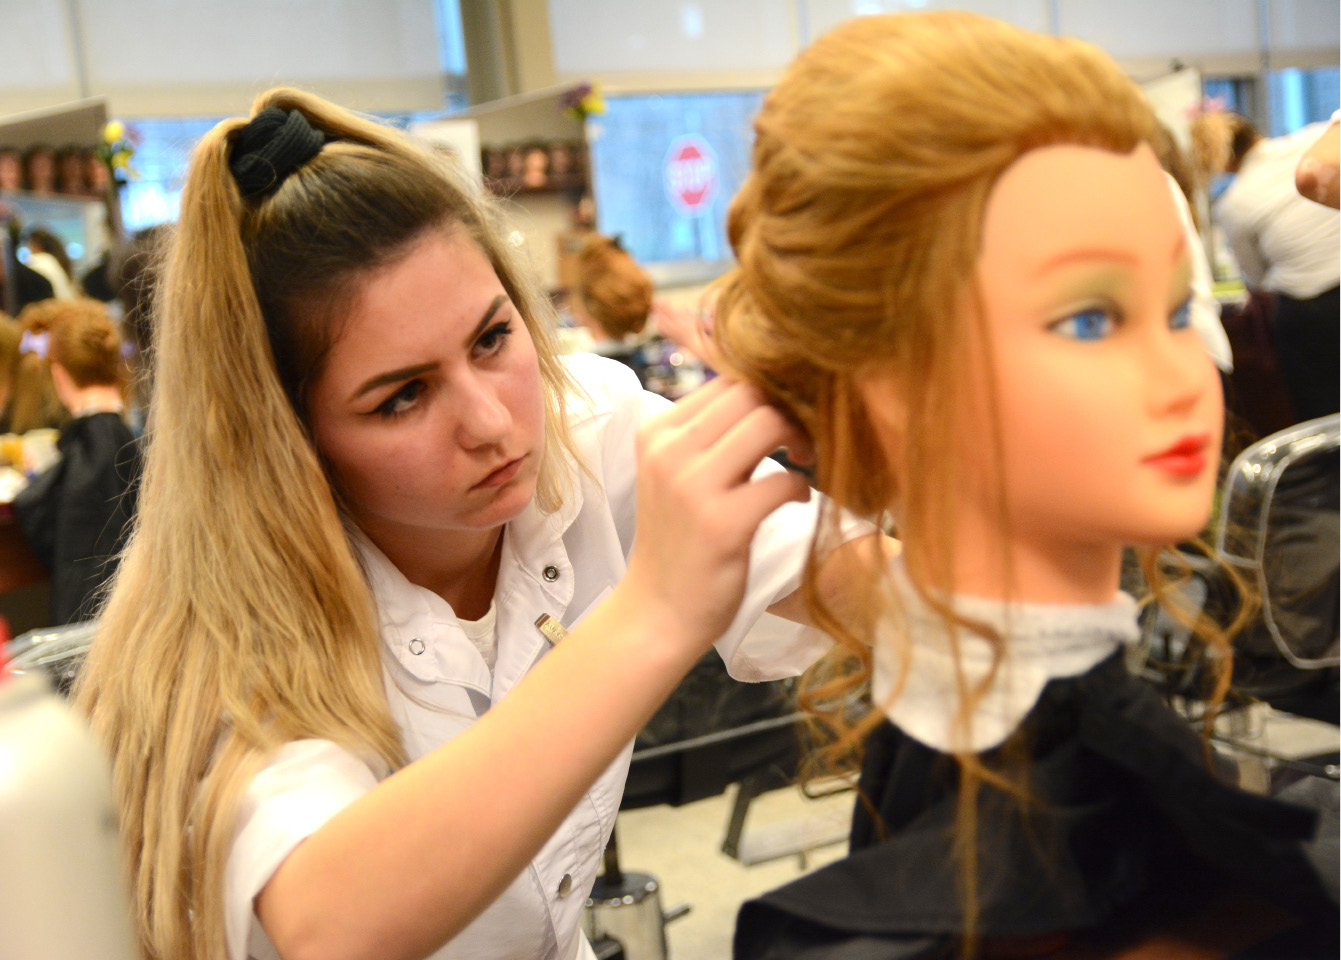 Sarena Tetreault, of Ellis Technical High School, creates an updo hairstyle during a Skills USA competition at Wilcox Technical High School on Friday, March 31, 2017. | Bryan Lipiner, Record-Journal